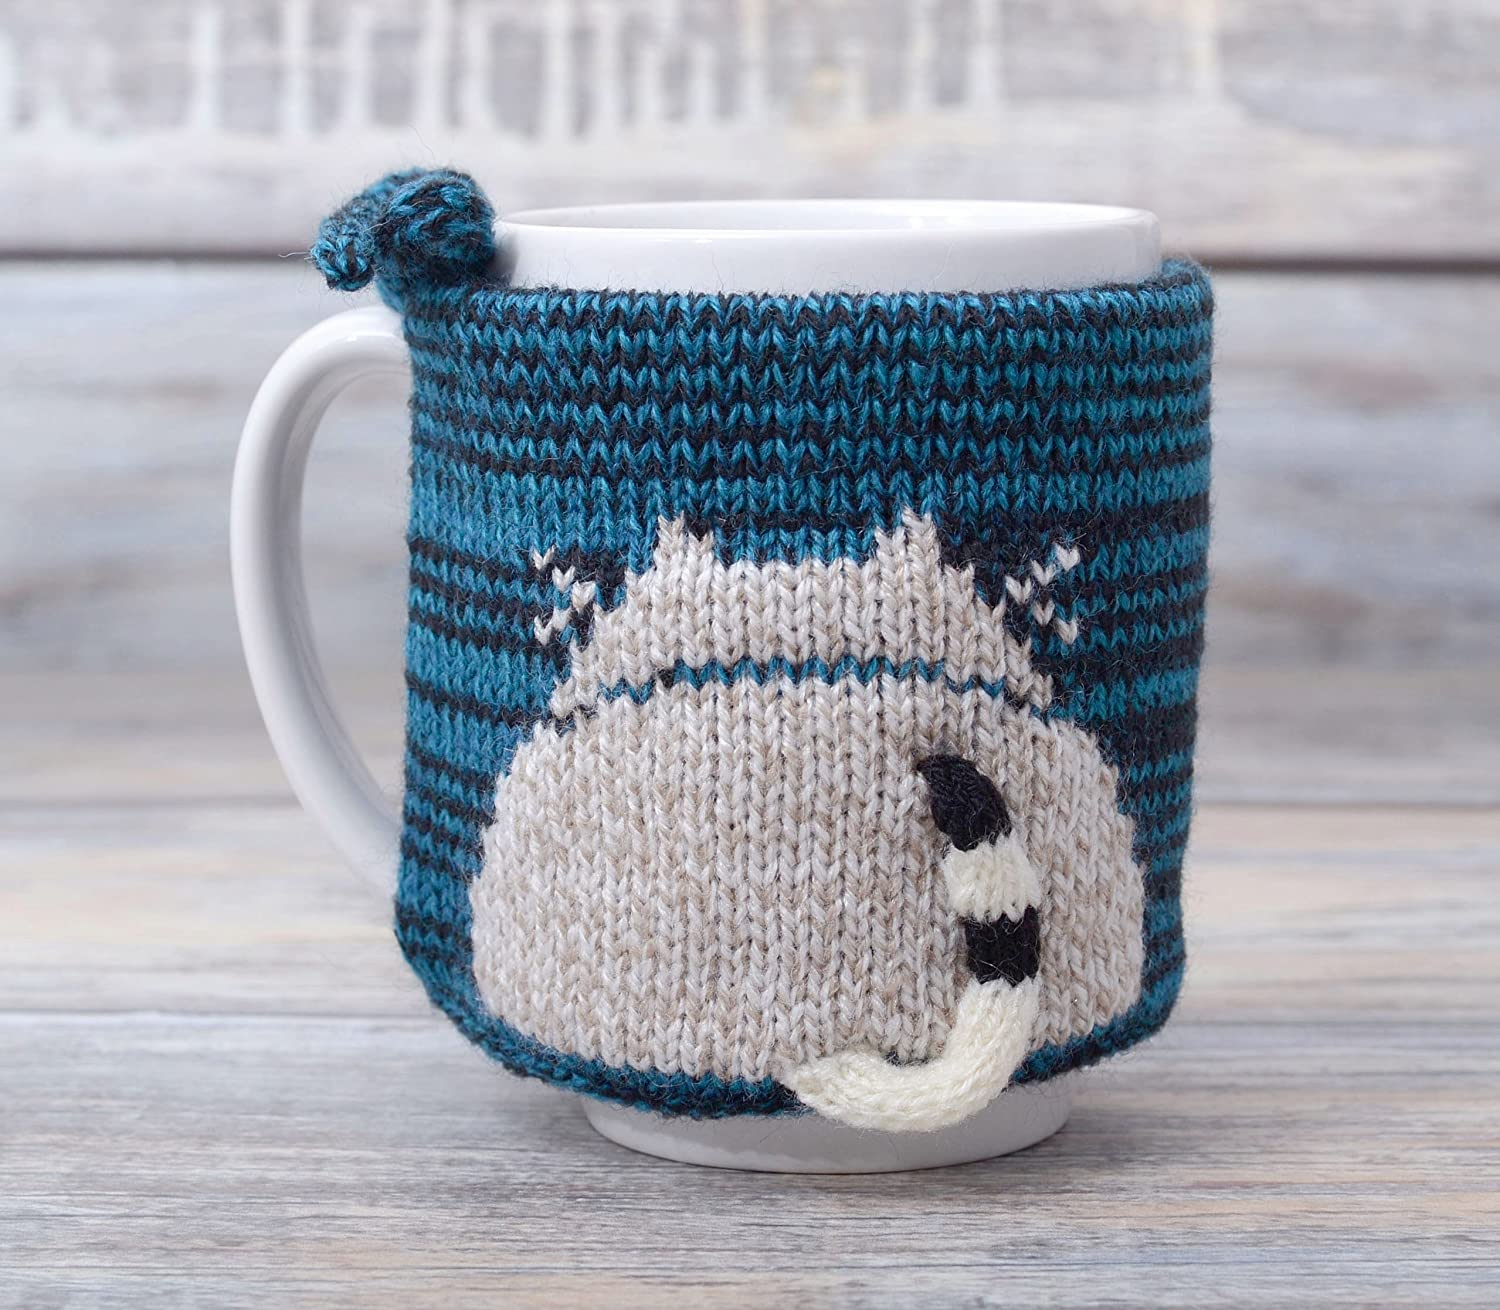 Coffee Mug Cozy with Cat Butt Tea Cup Teacup Sweater Cosy Warmer Knit Gift Kitty Sleeve Kitten